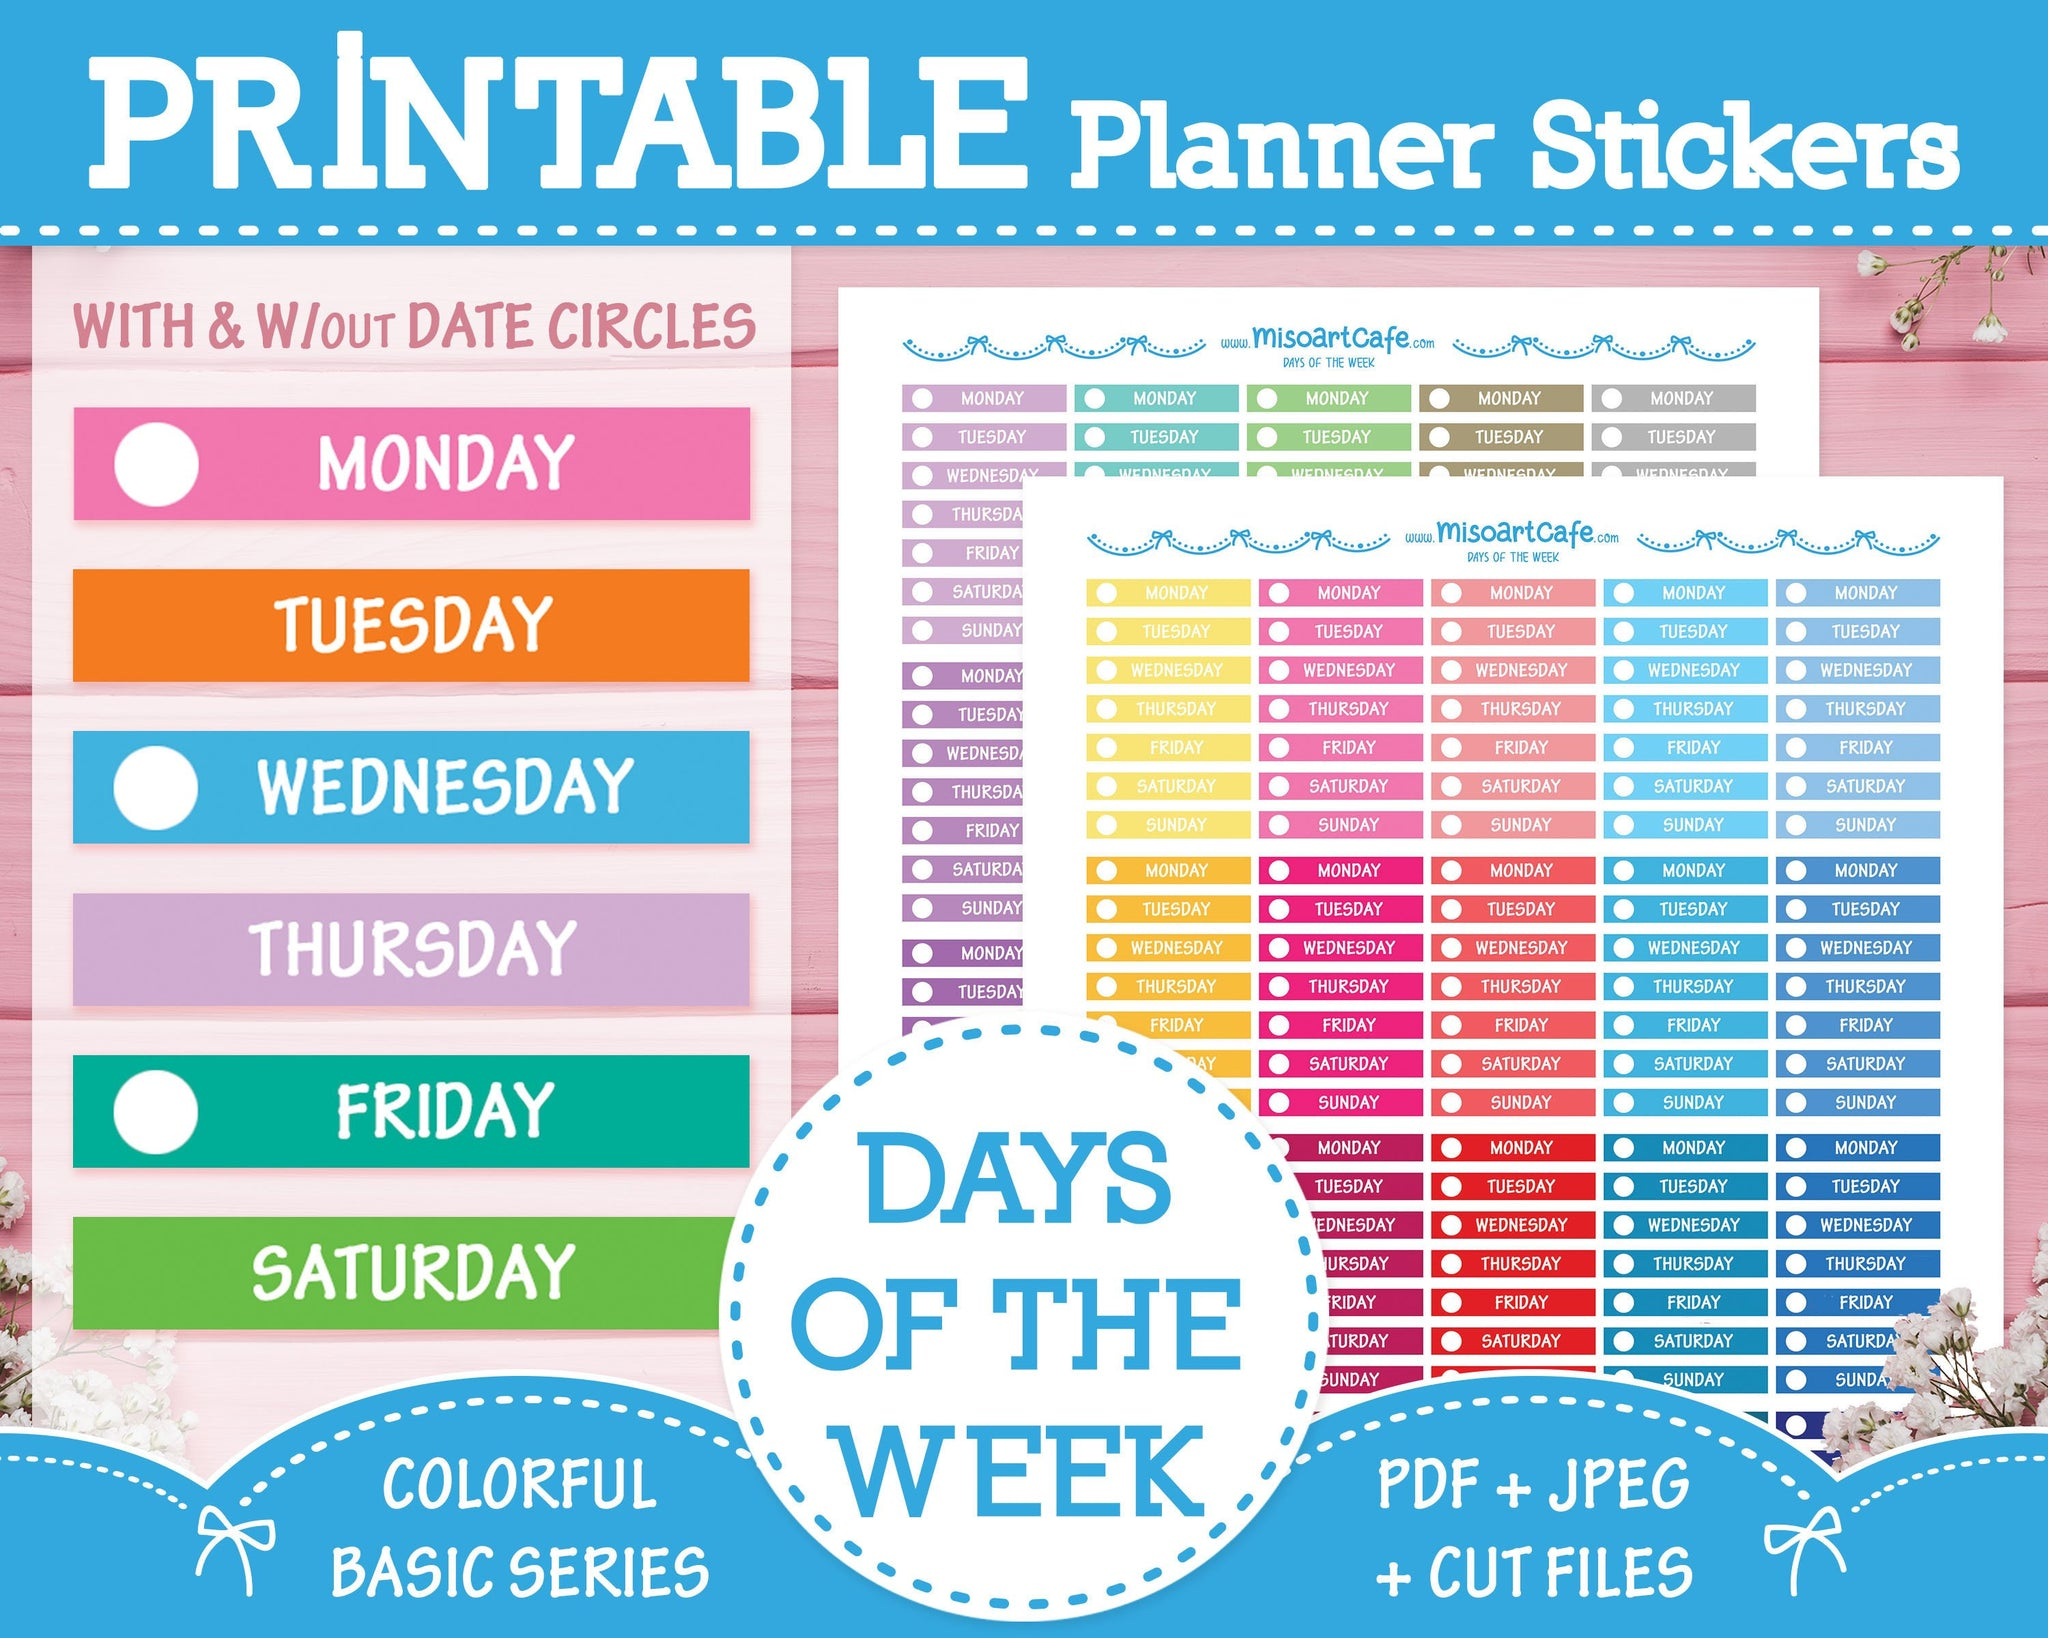 Printable Days of the Week - Colorful Basic Planner Stickers - Miso Art Cafe